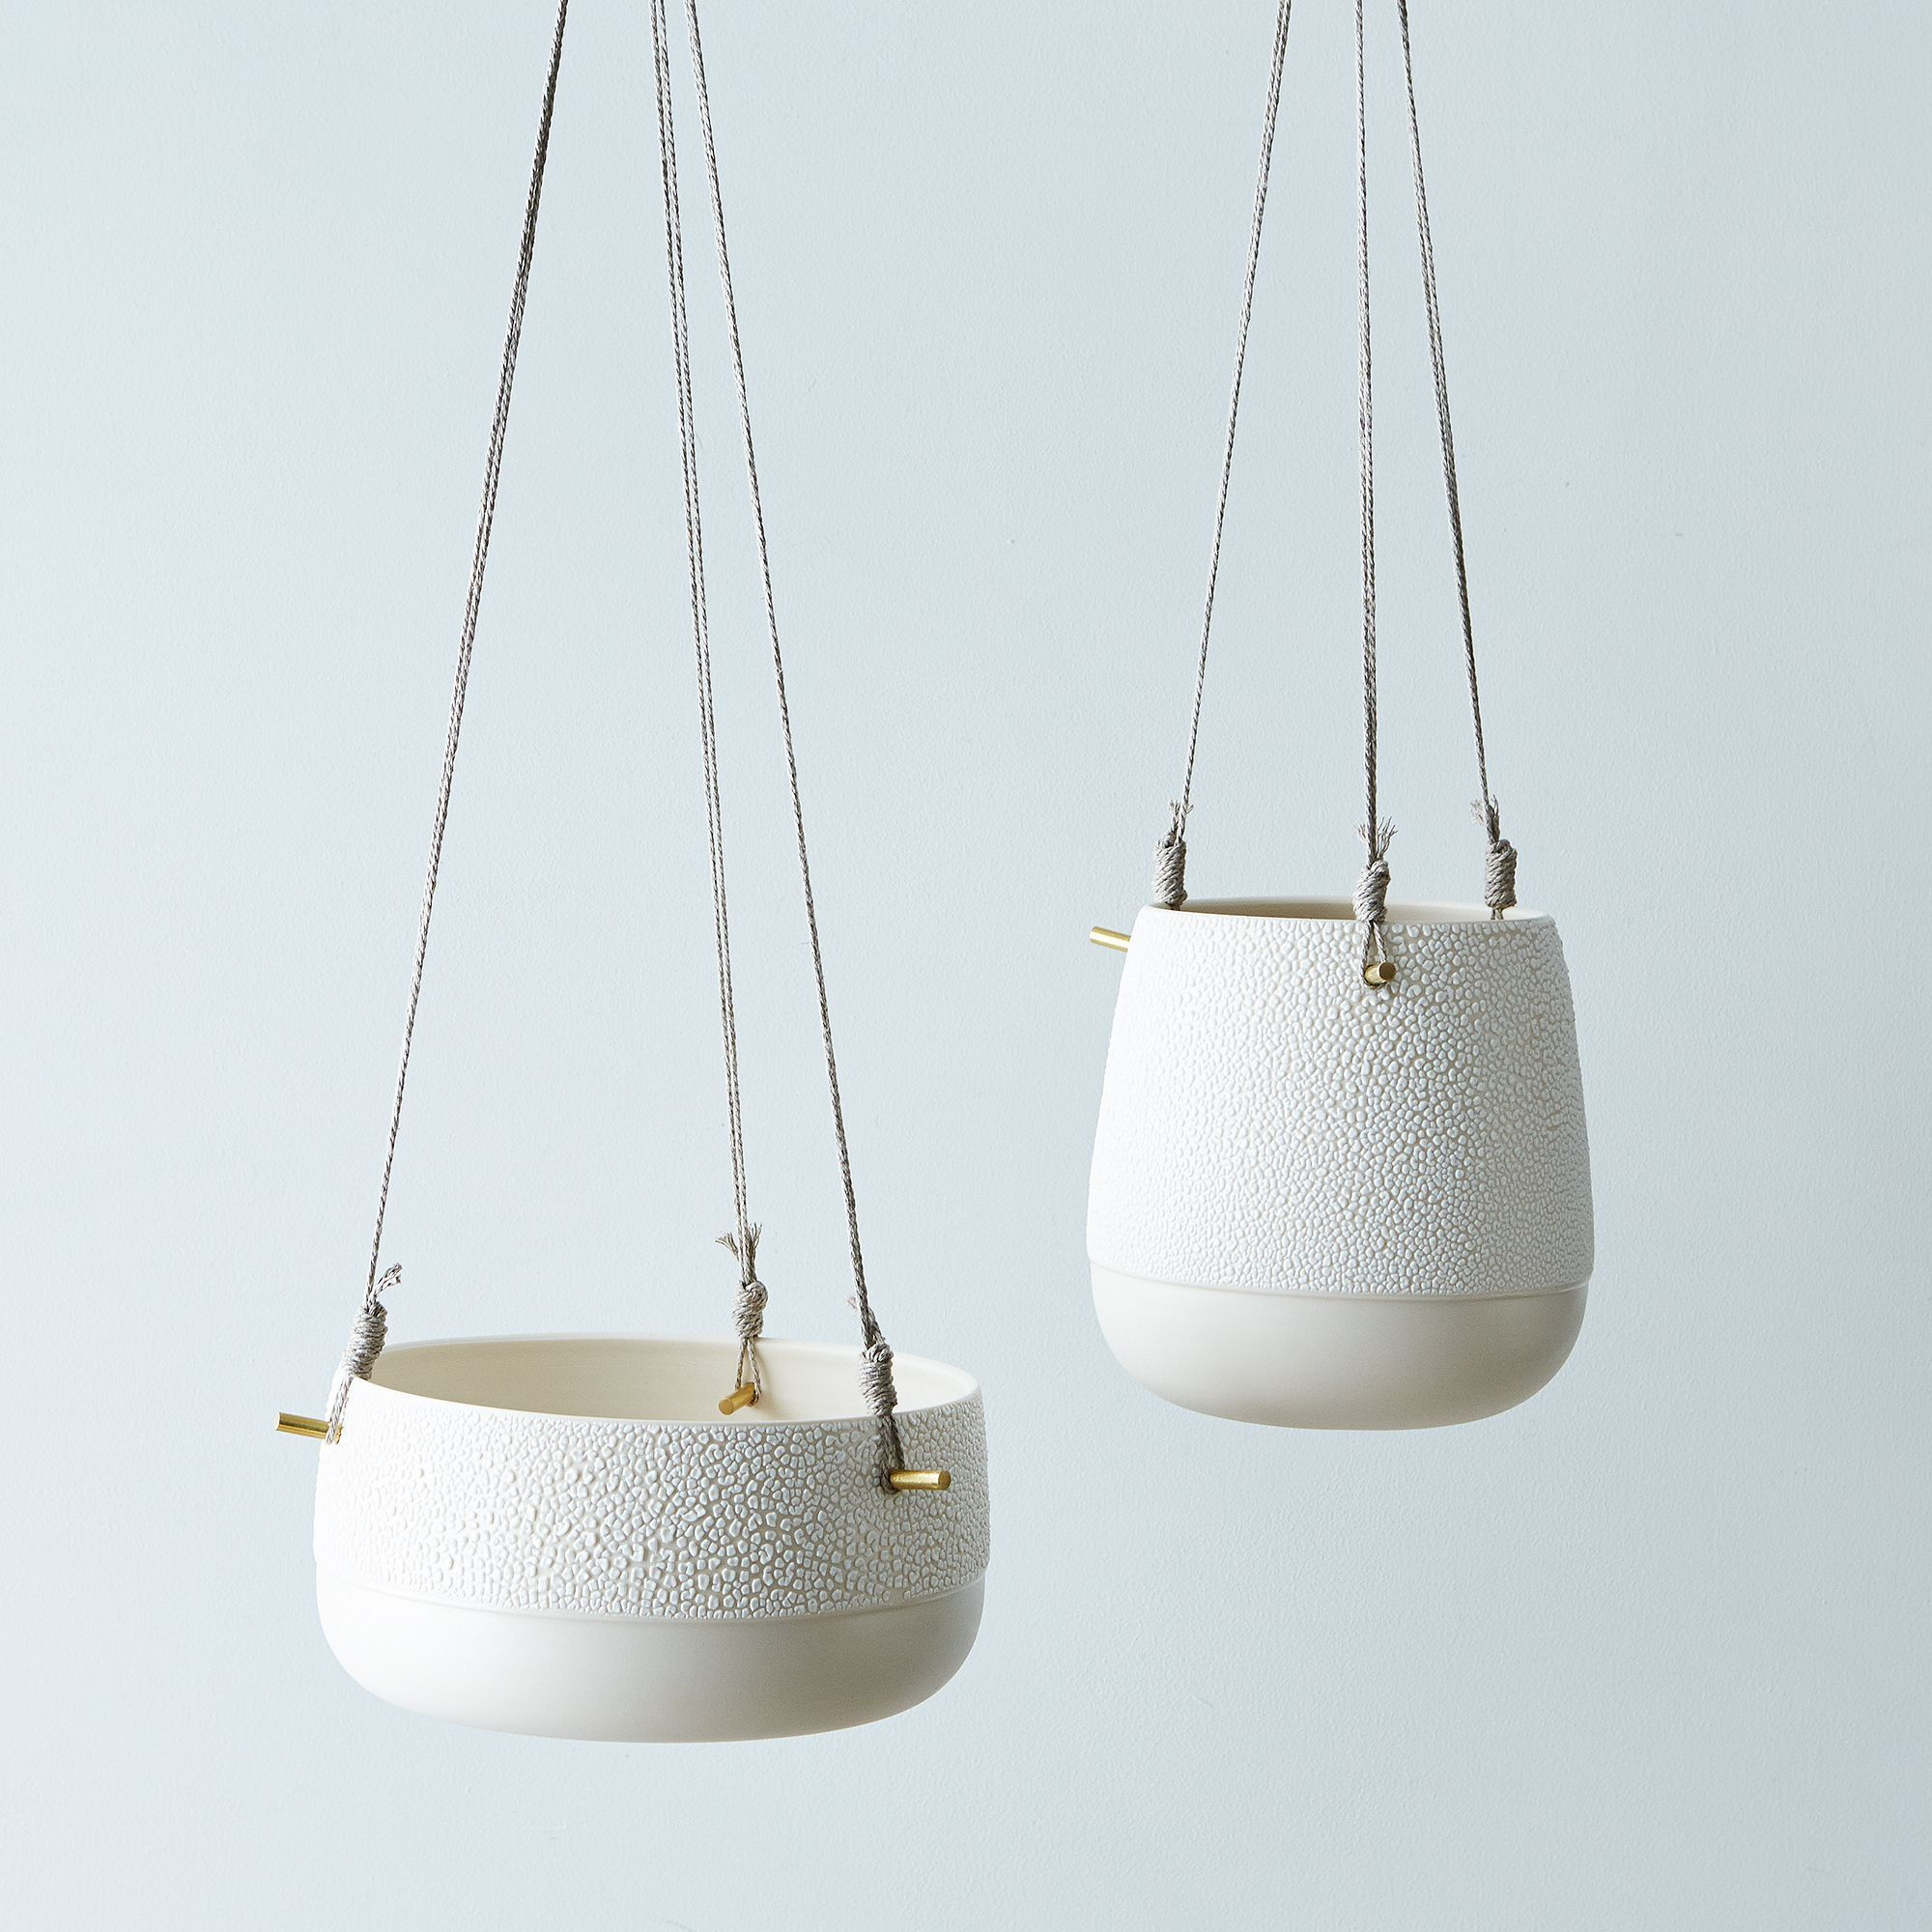 Textured Ceramic and Brass Hanging Planters on Food52